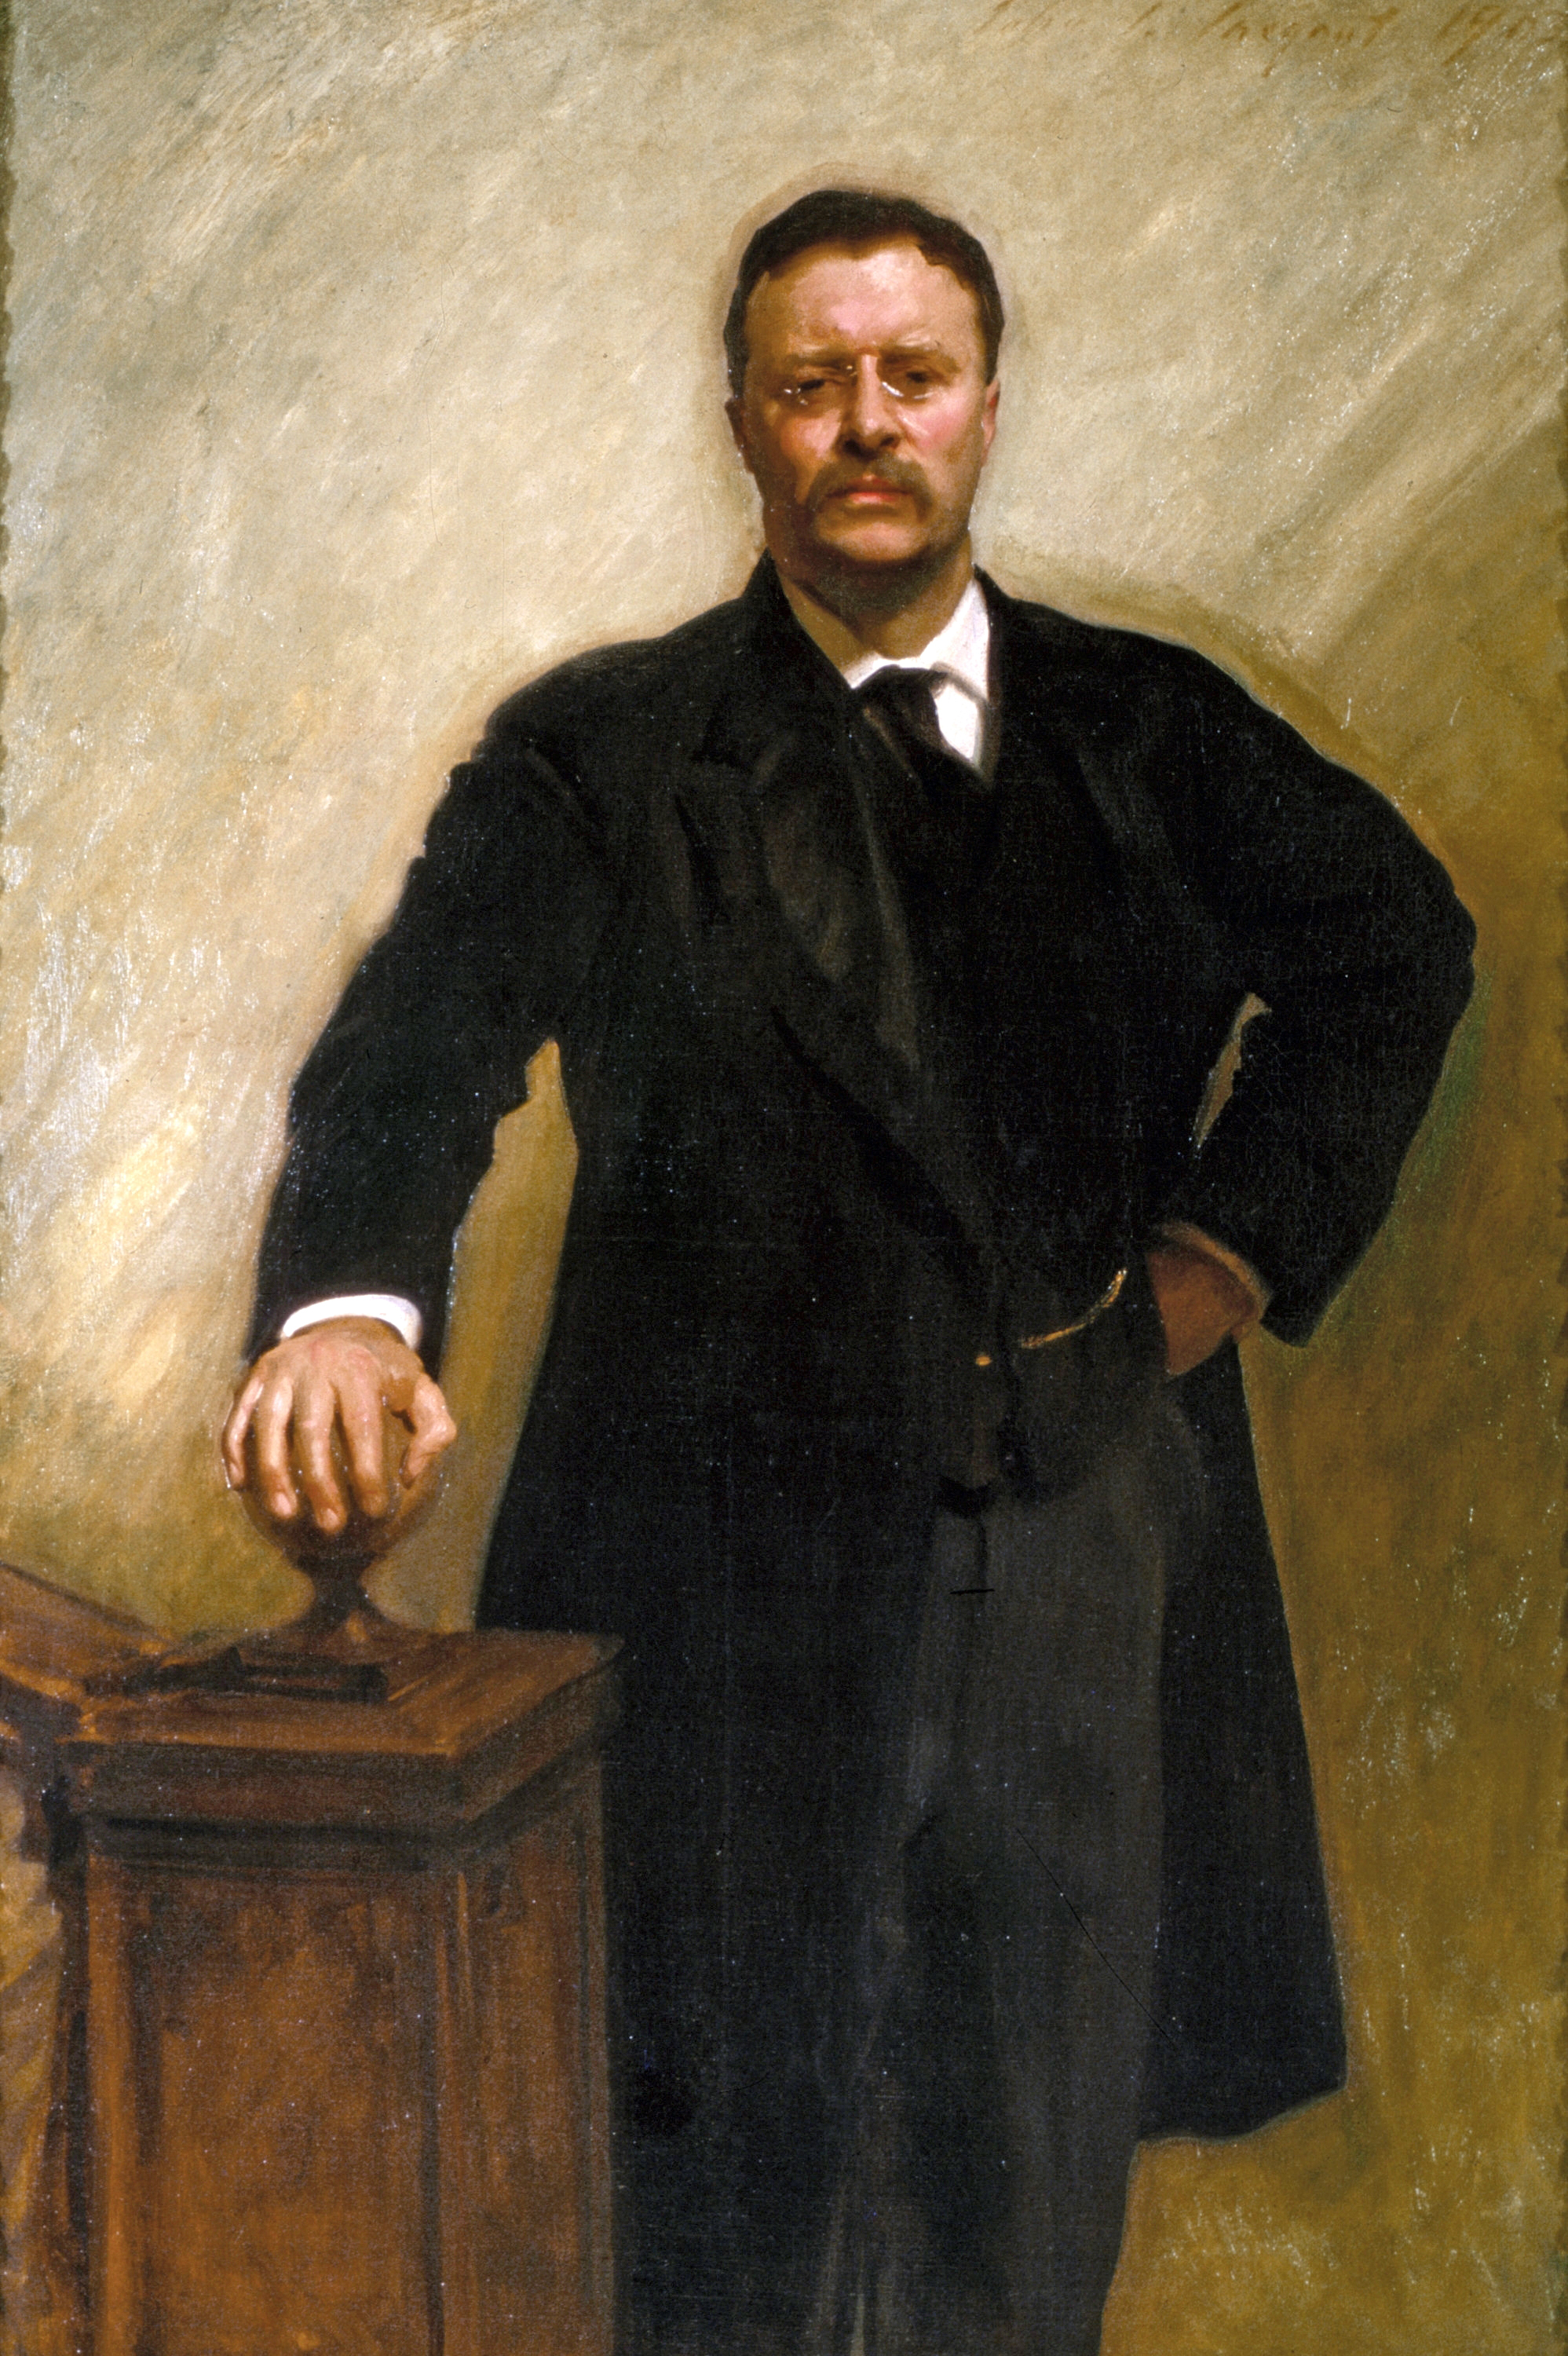 Official White House Portrait of Theodore Roosevelt By John Singer Sargent; image courtesy of the The White House Historical Association